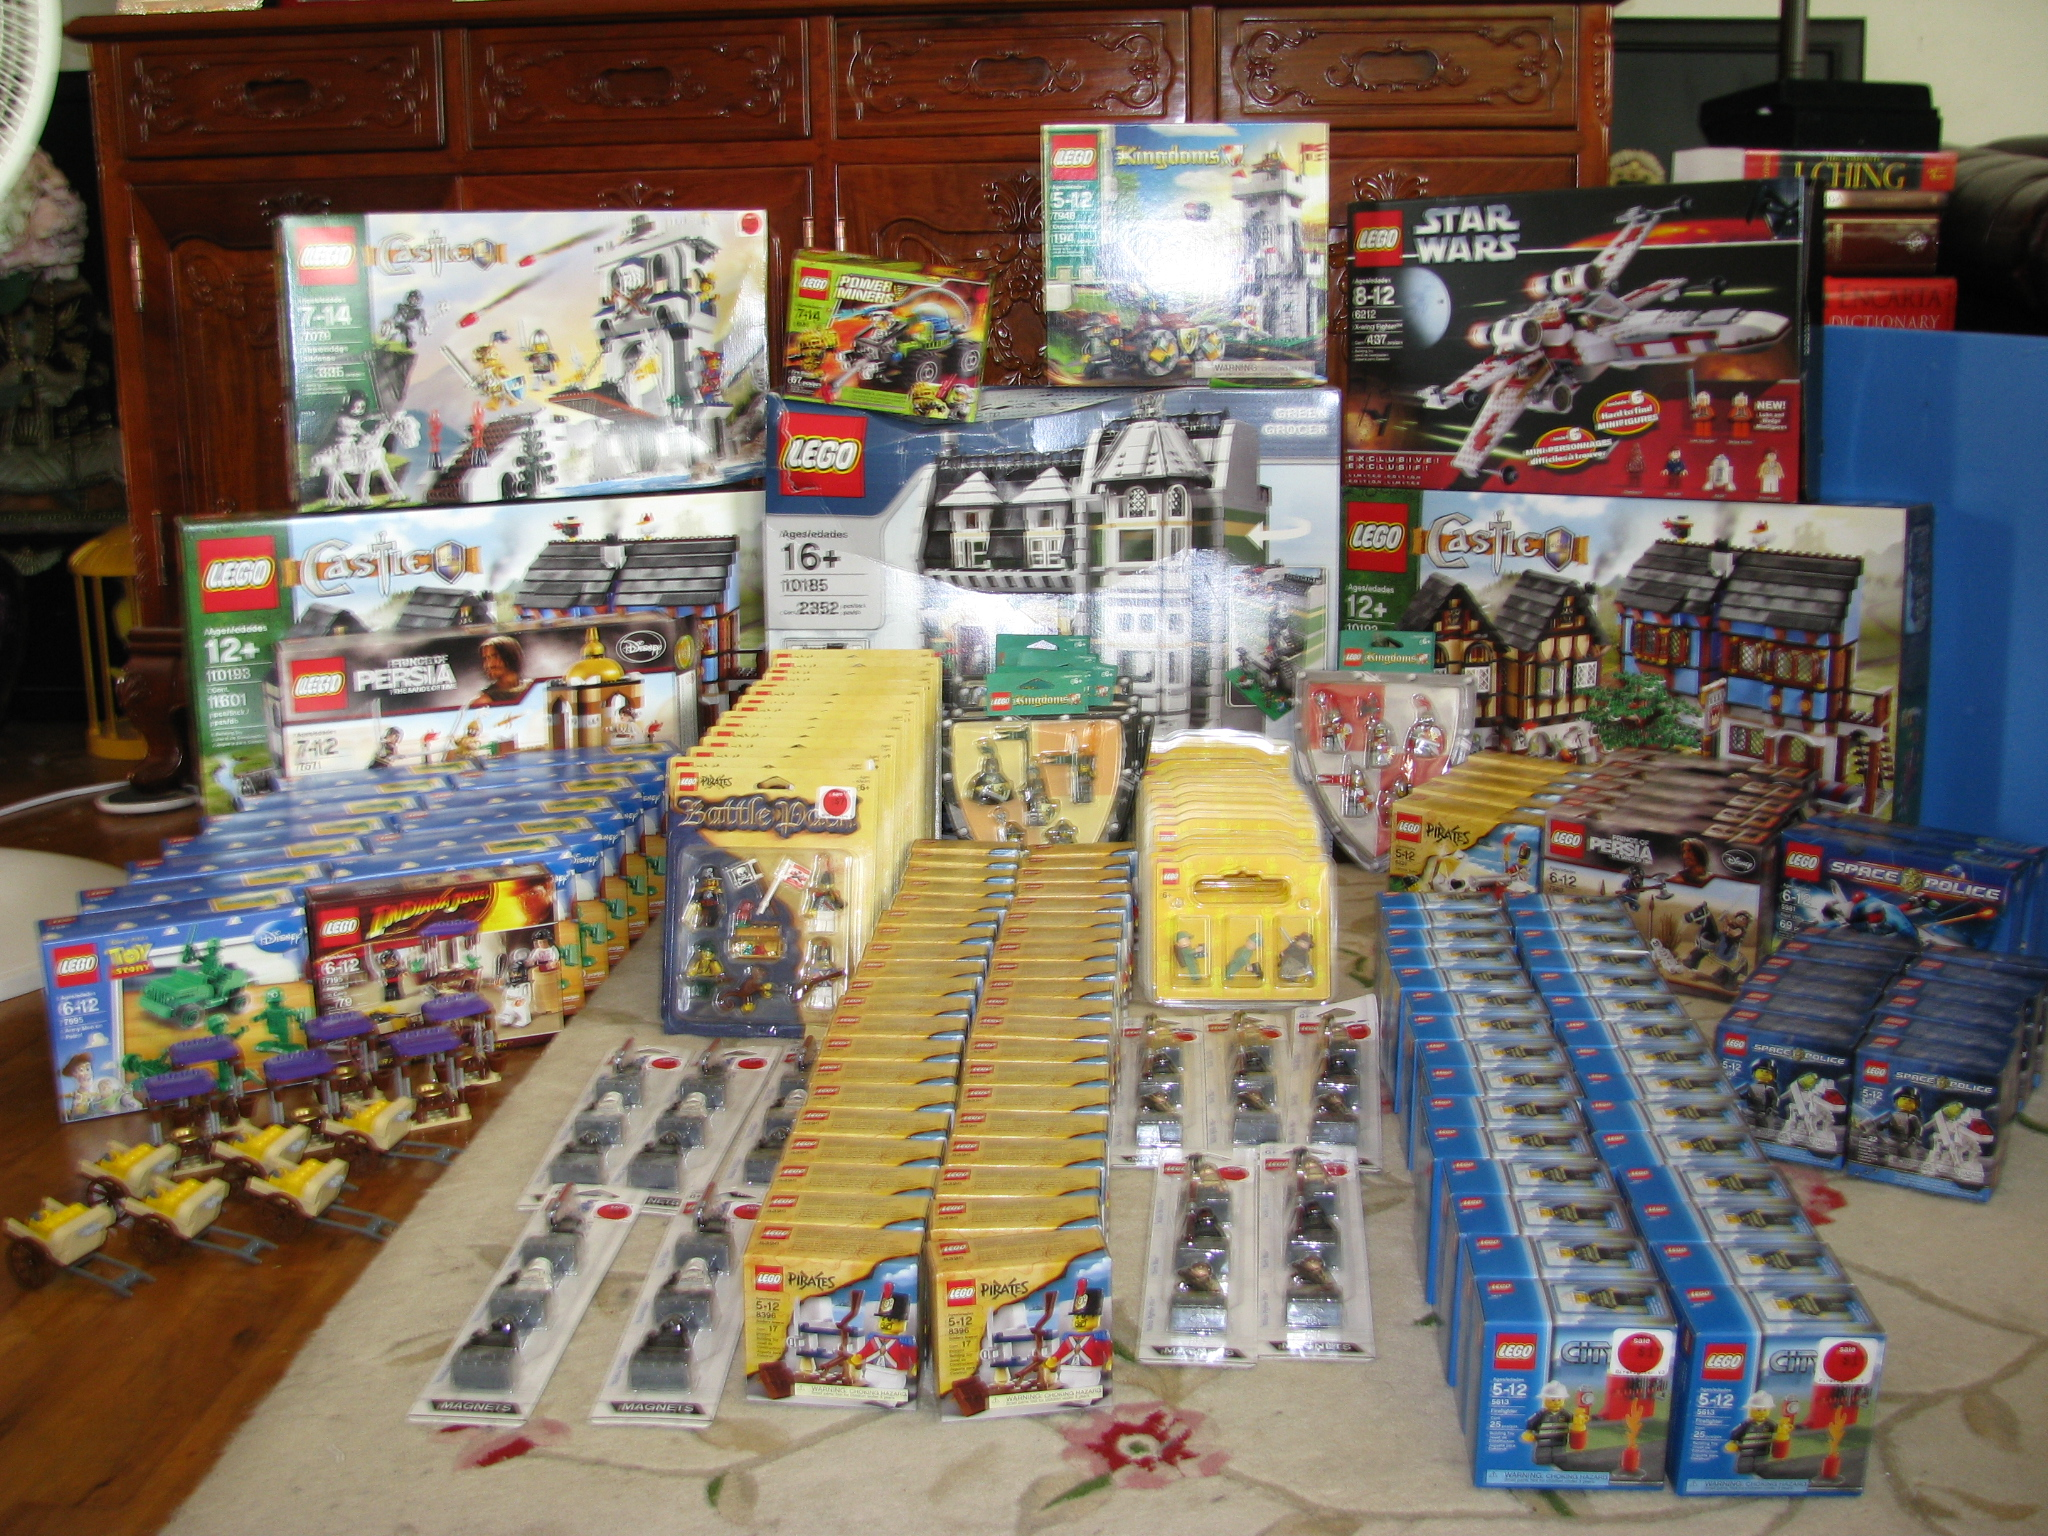 8-2009_8-2010_lego_purchase.jpg